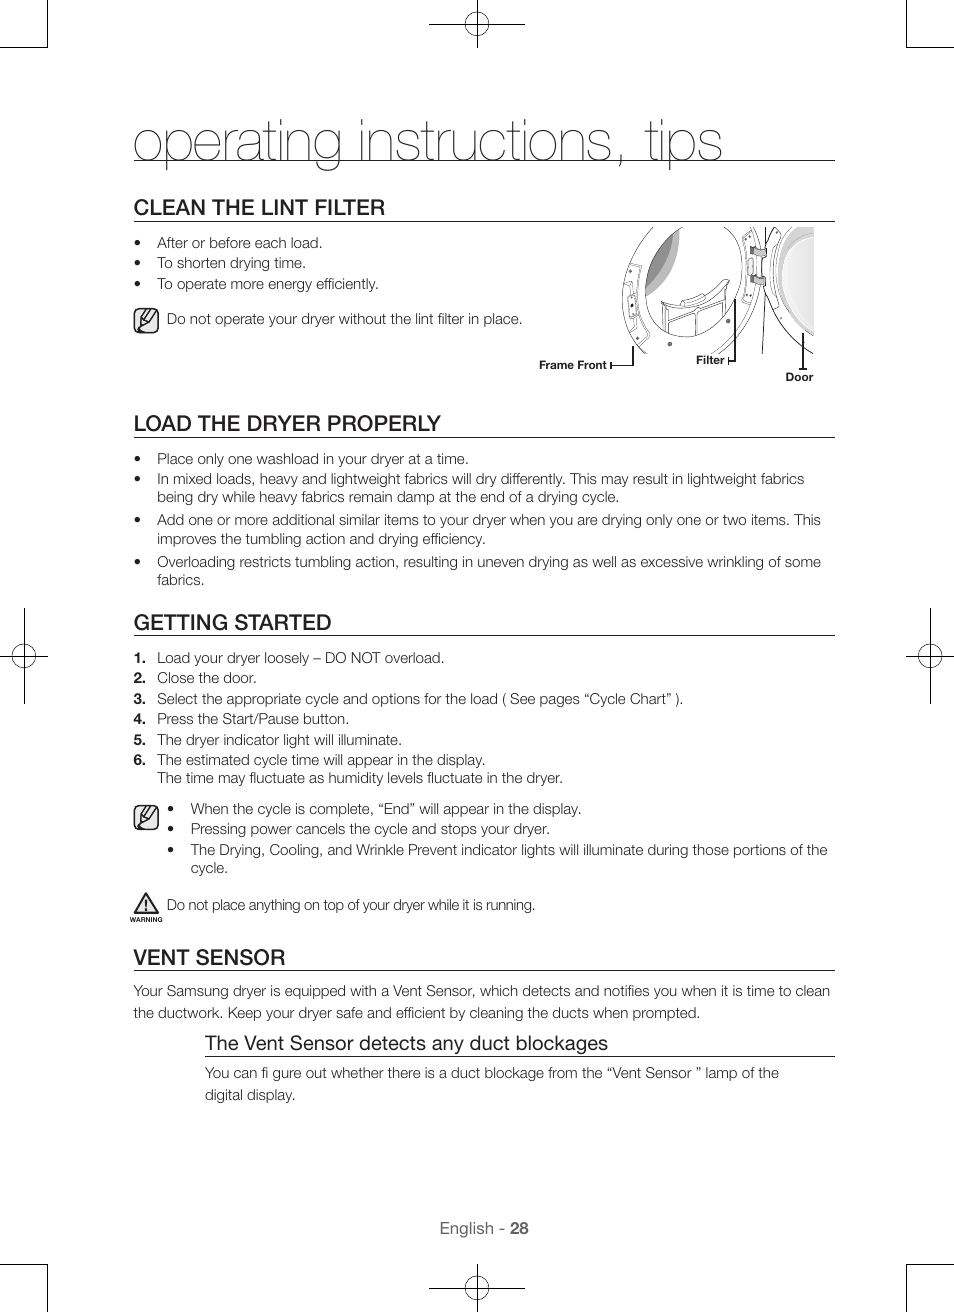 Operating instructions, tips, Clean the lint filter, Load the dryer